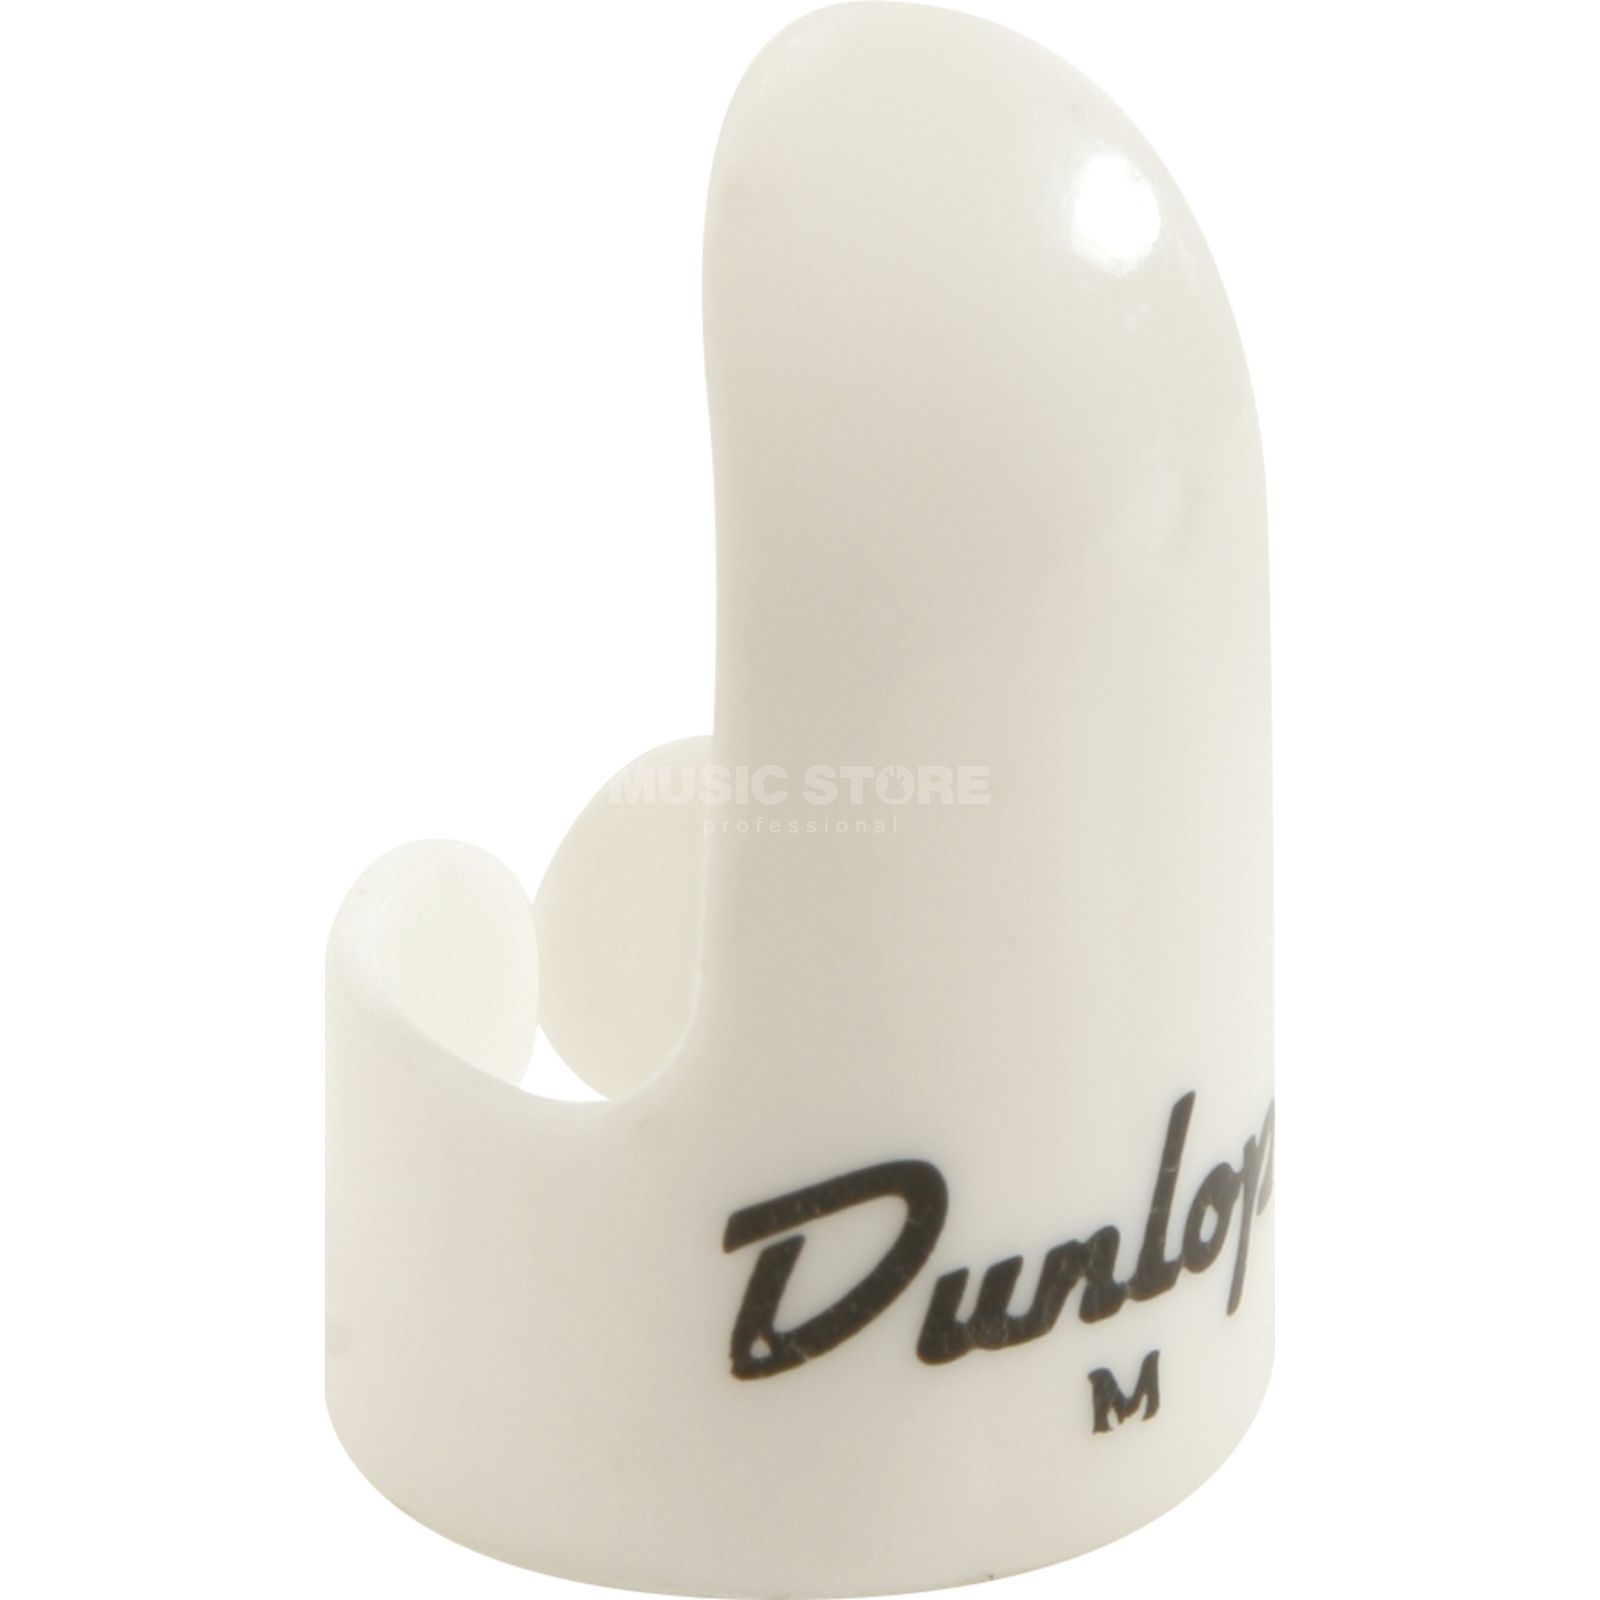 Dunlop Finger pick medium - white  Produktbillede